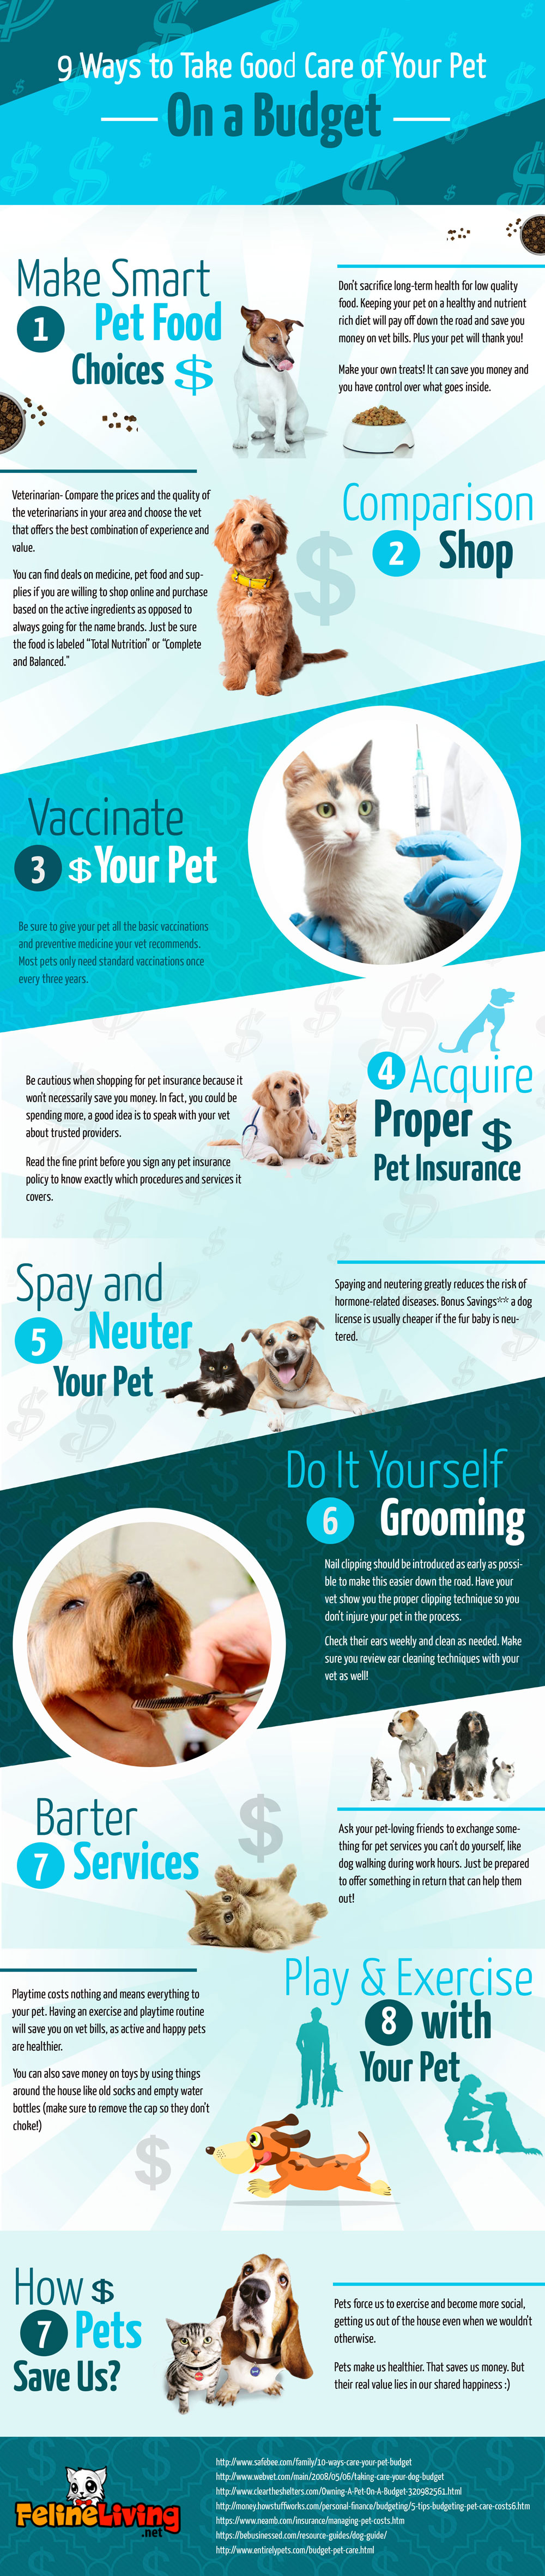 Simple Ways To Care For Your Pet On a Budget.jpg